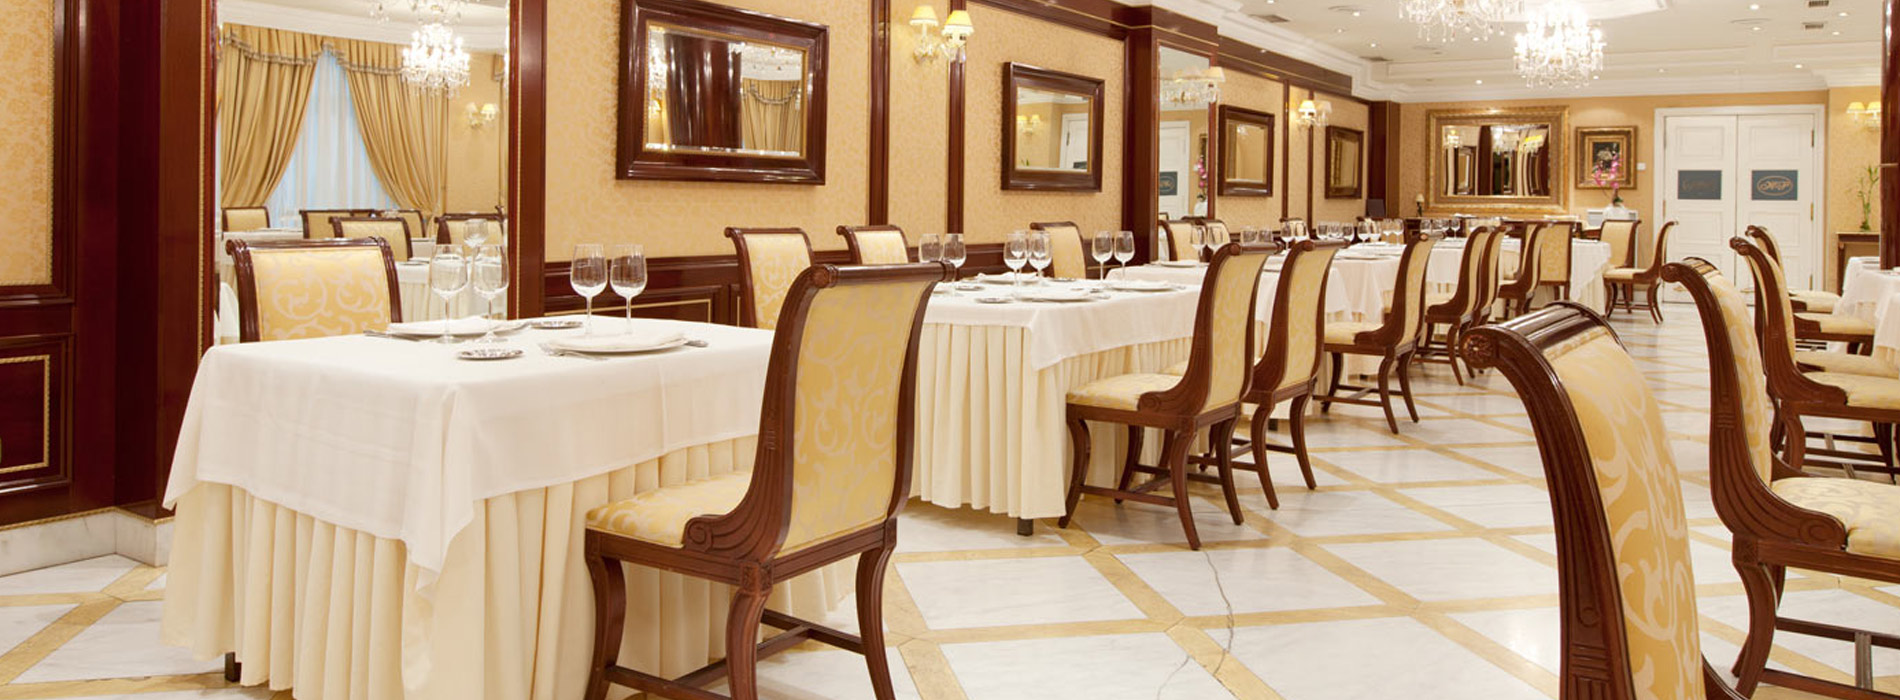 header-restaurant-new